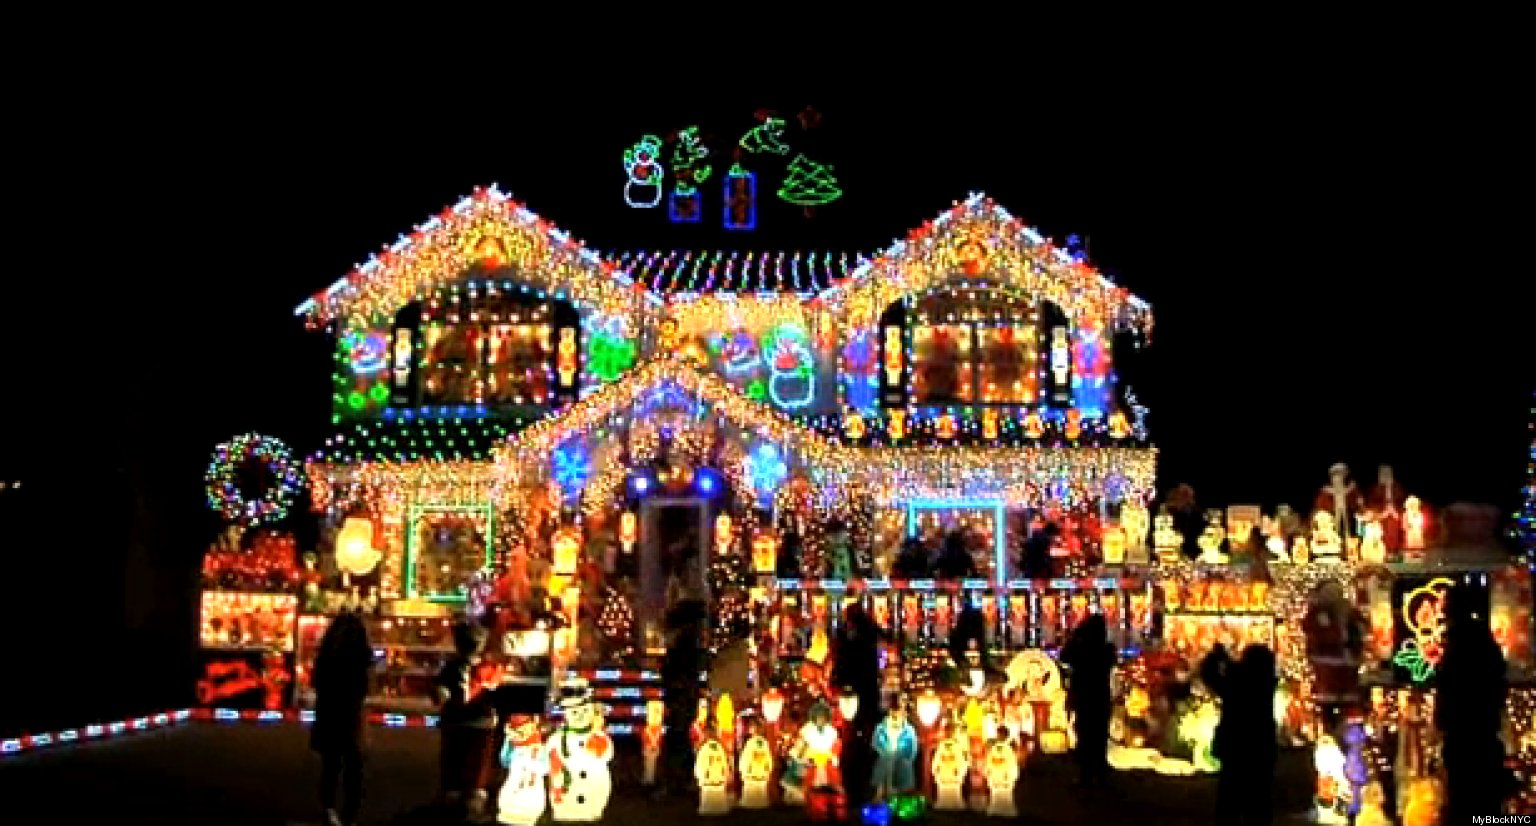 The Brightest Christmas House In NYC: MyBlockNYC Visits Kevin Lynchu0027s  Festive Queens Home (VIDEO) | HuffPost